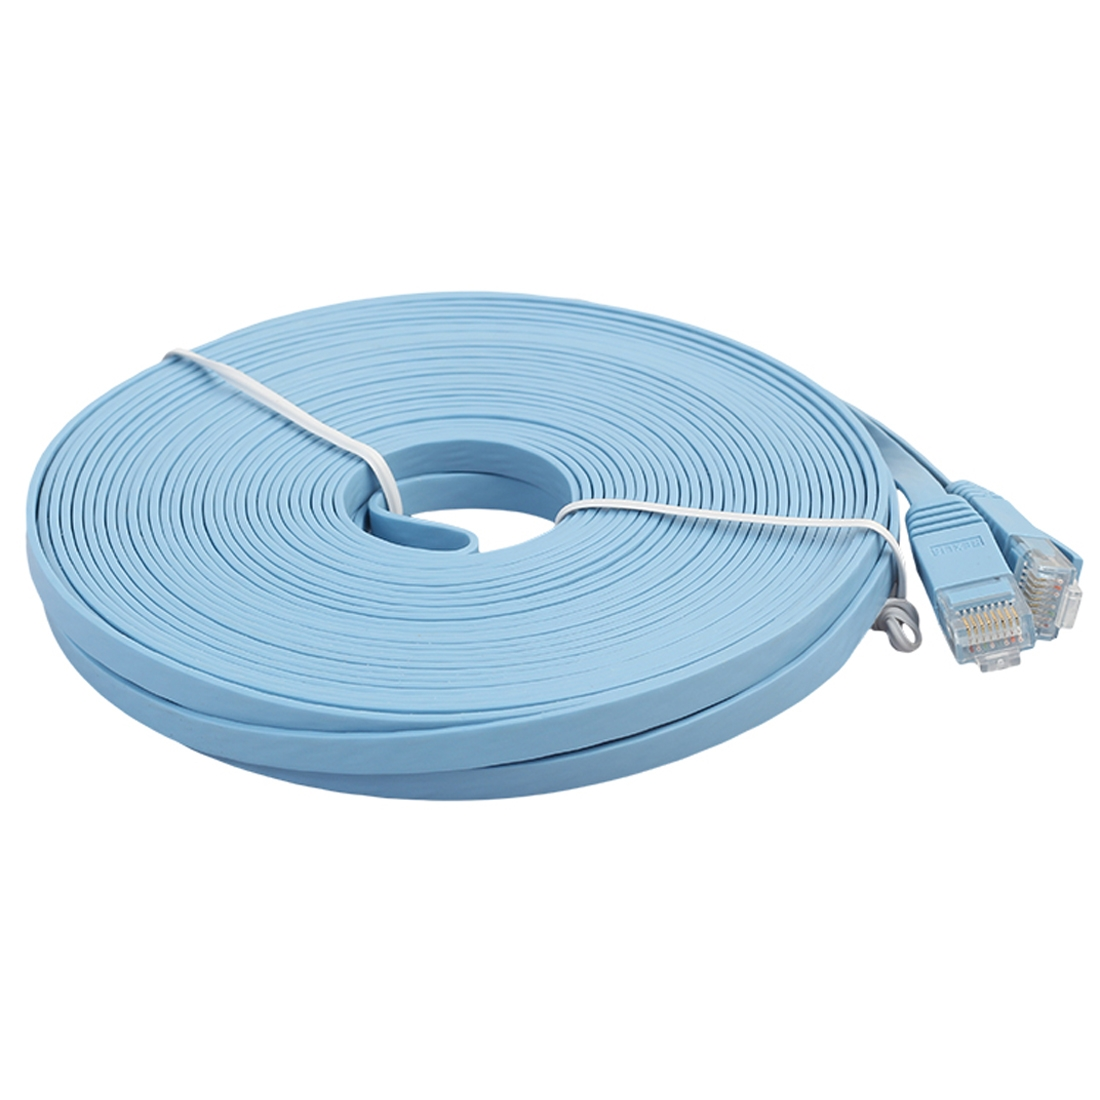 10m cat6 ultra thin flat ethernet network lan cable patch lead rj45 blue. Black Bedroom Furniture Sets. Home Design Ideas